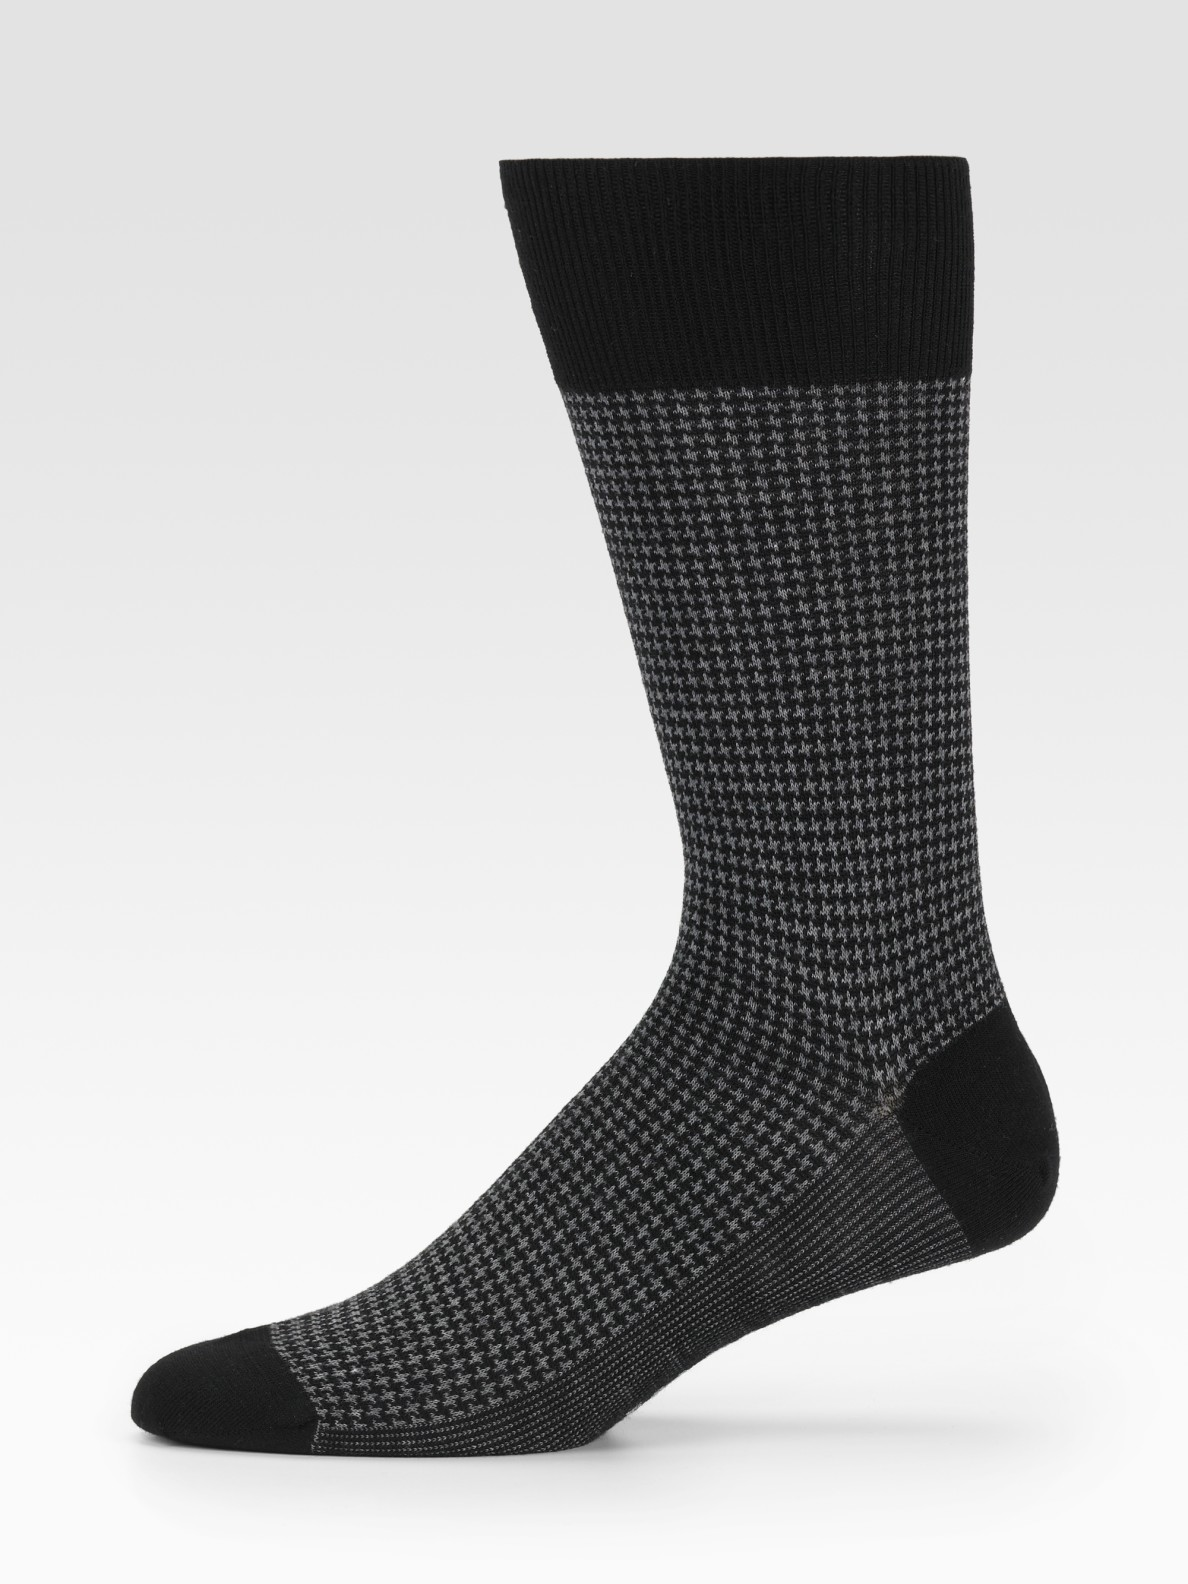 Shop a variety of adidas mens socks. Crew, low cut and compression socks available at the adidas online store.